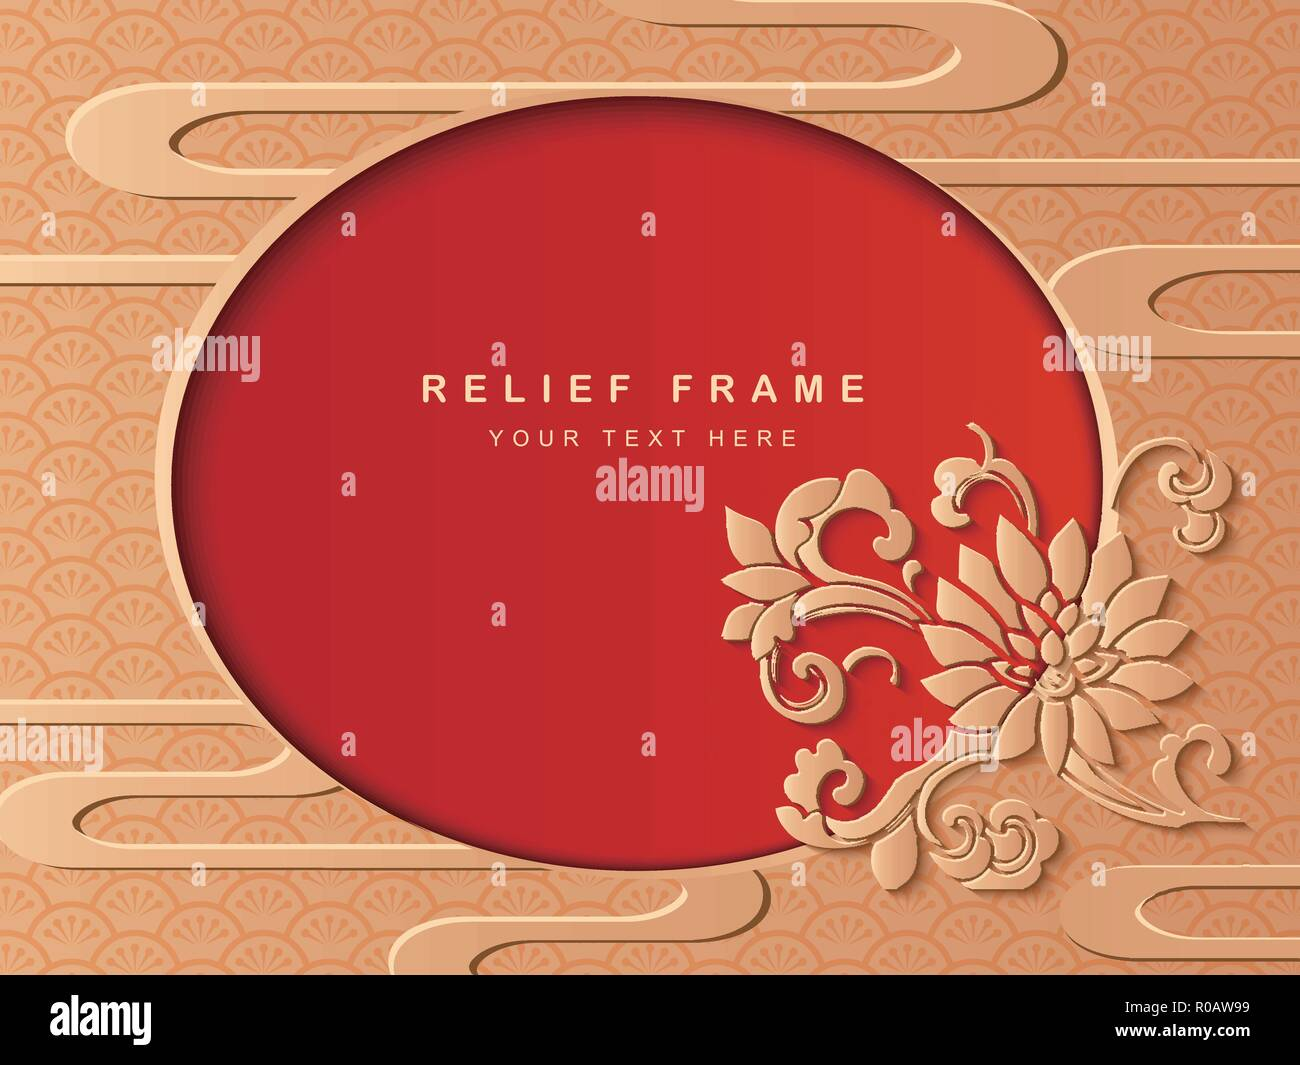 Oriental relief sculpture decoration frame botanic garden spiral curve vine flower and curve cloud abstract. Asian style ideal for greeting card or fe - Stock Image